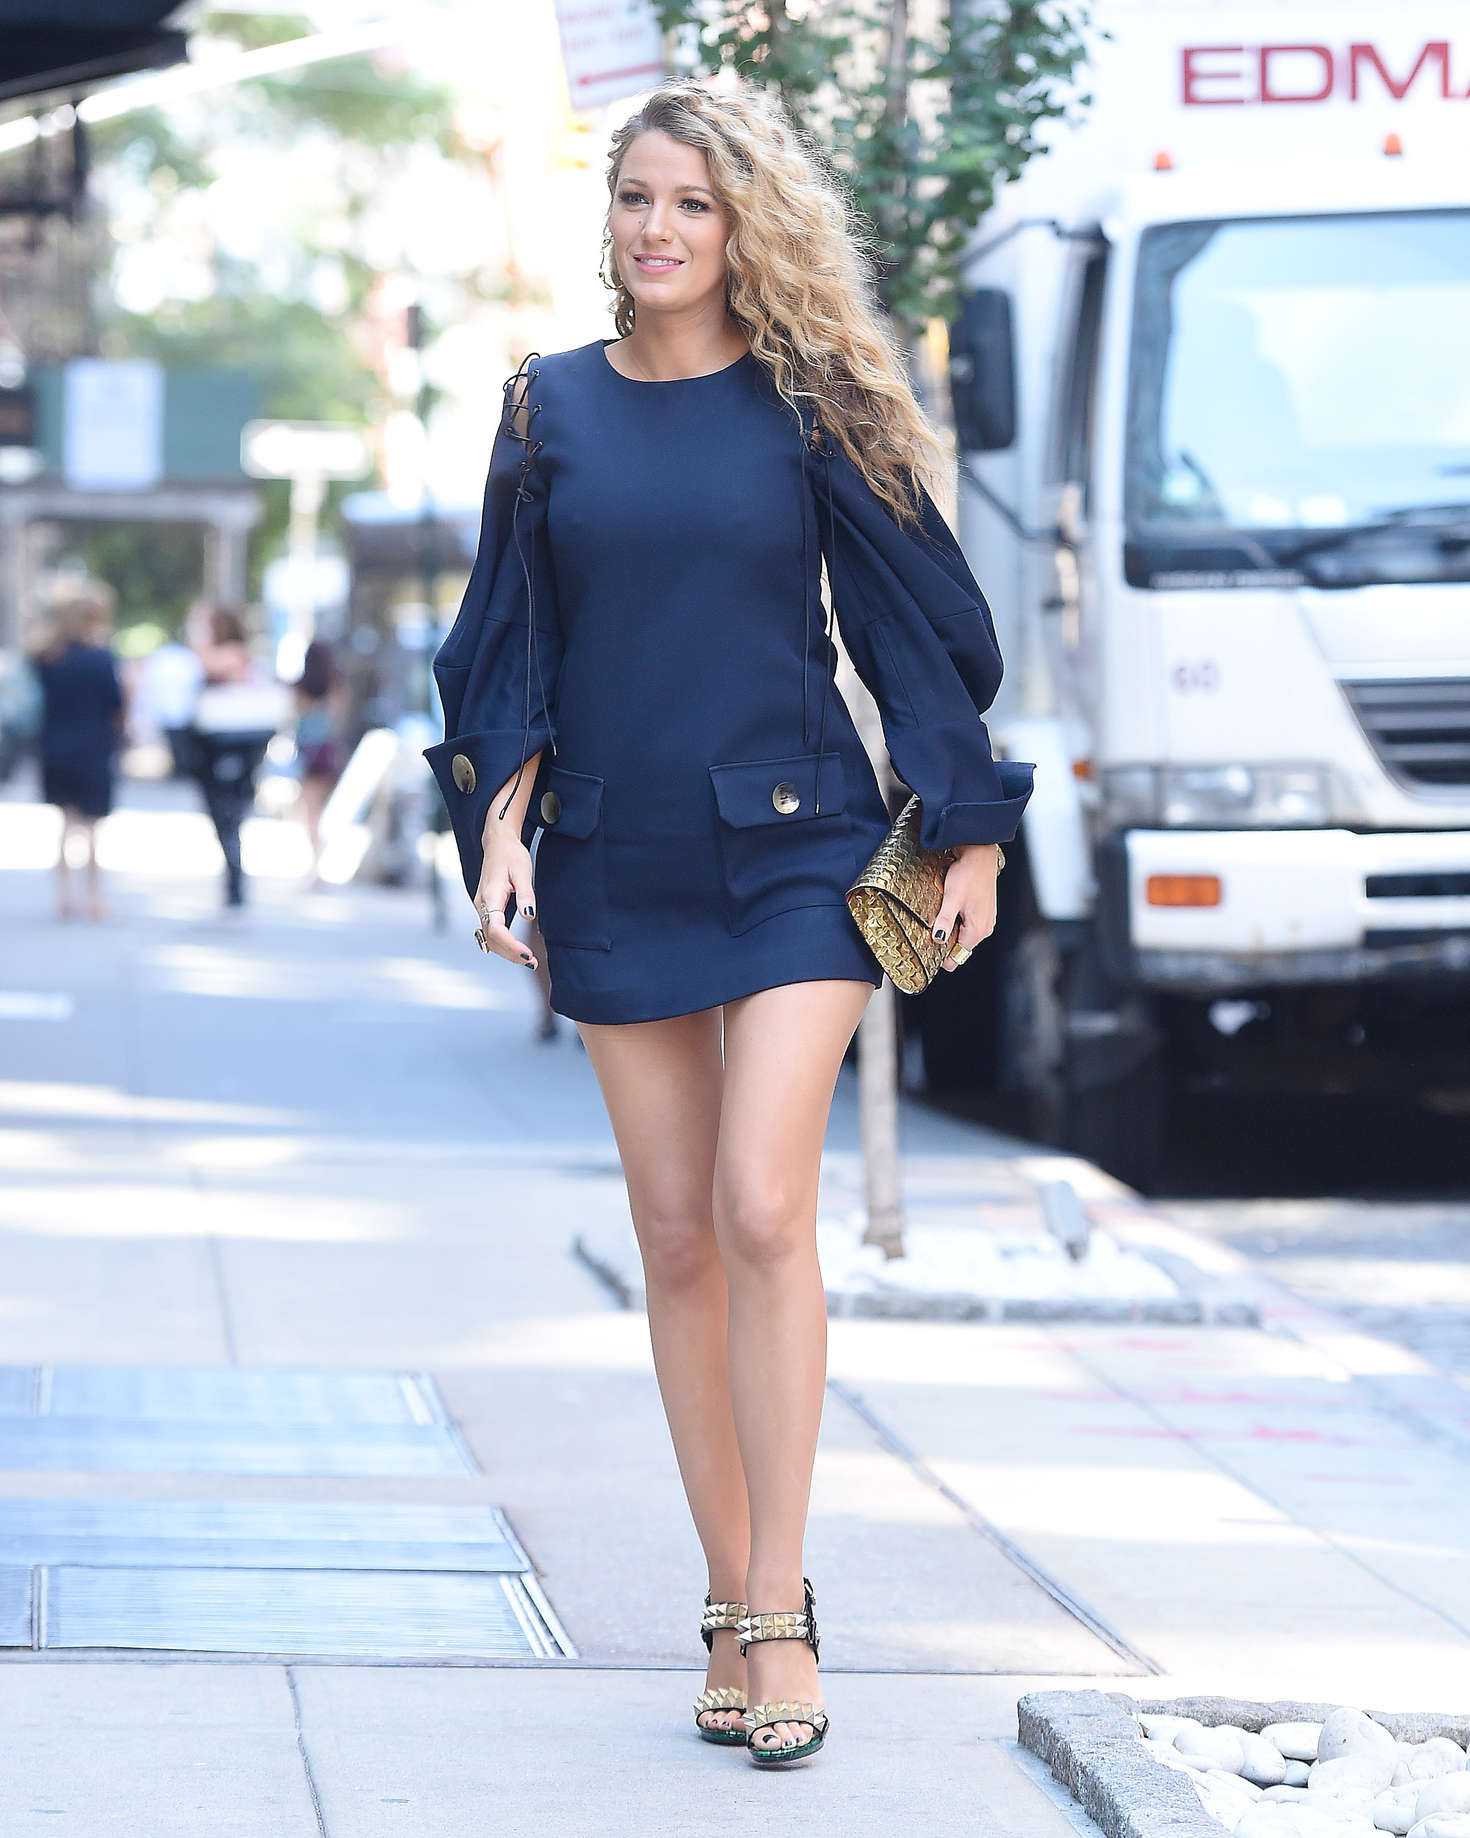 Blake Lively 2016 : Blake Lively in Short Blue Dress -05